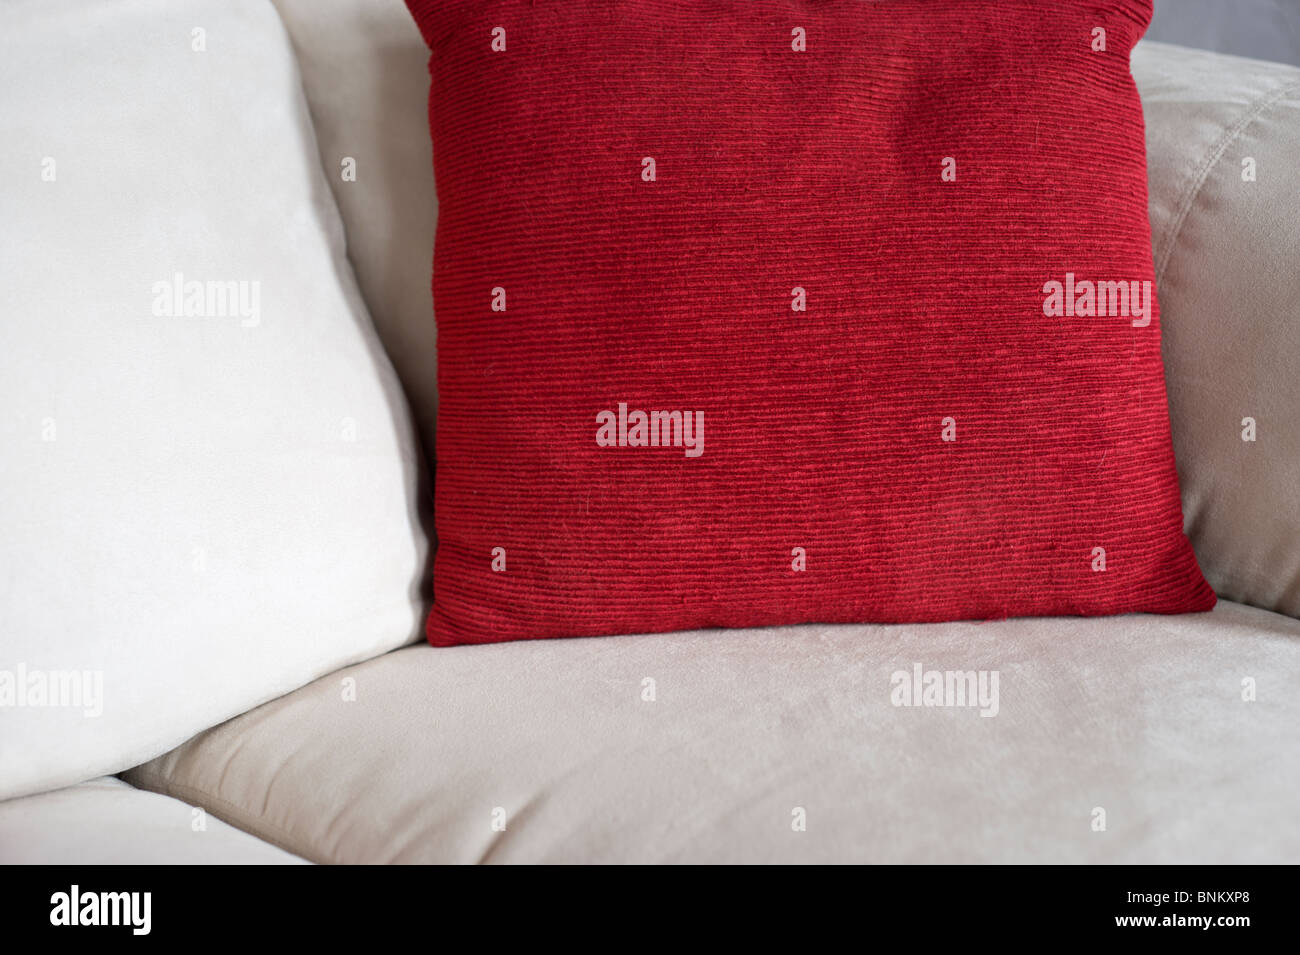 cushions stockfotos cushions bilder alamy. Black Bedroom Furniture Sets. Home Design Ideas